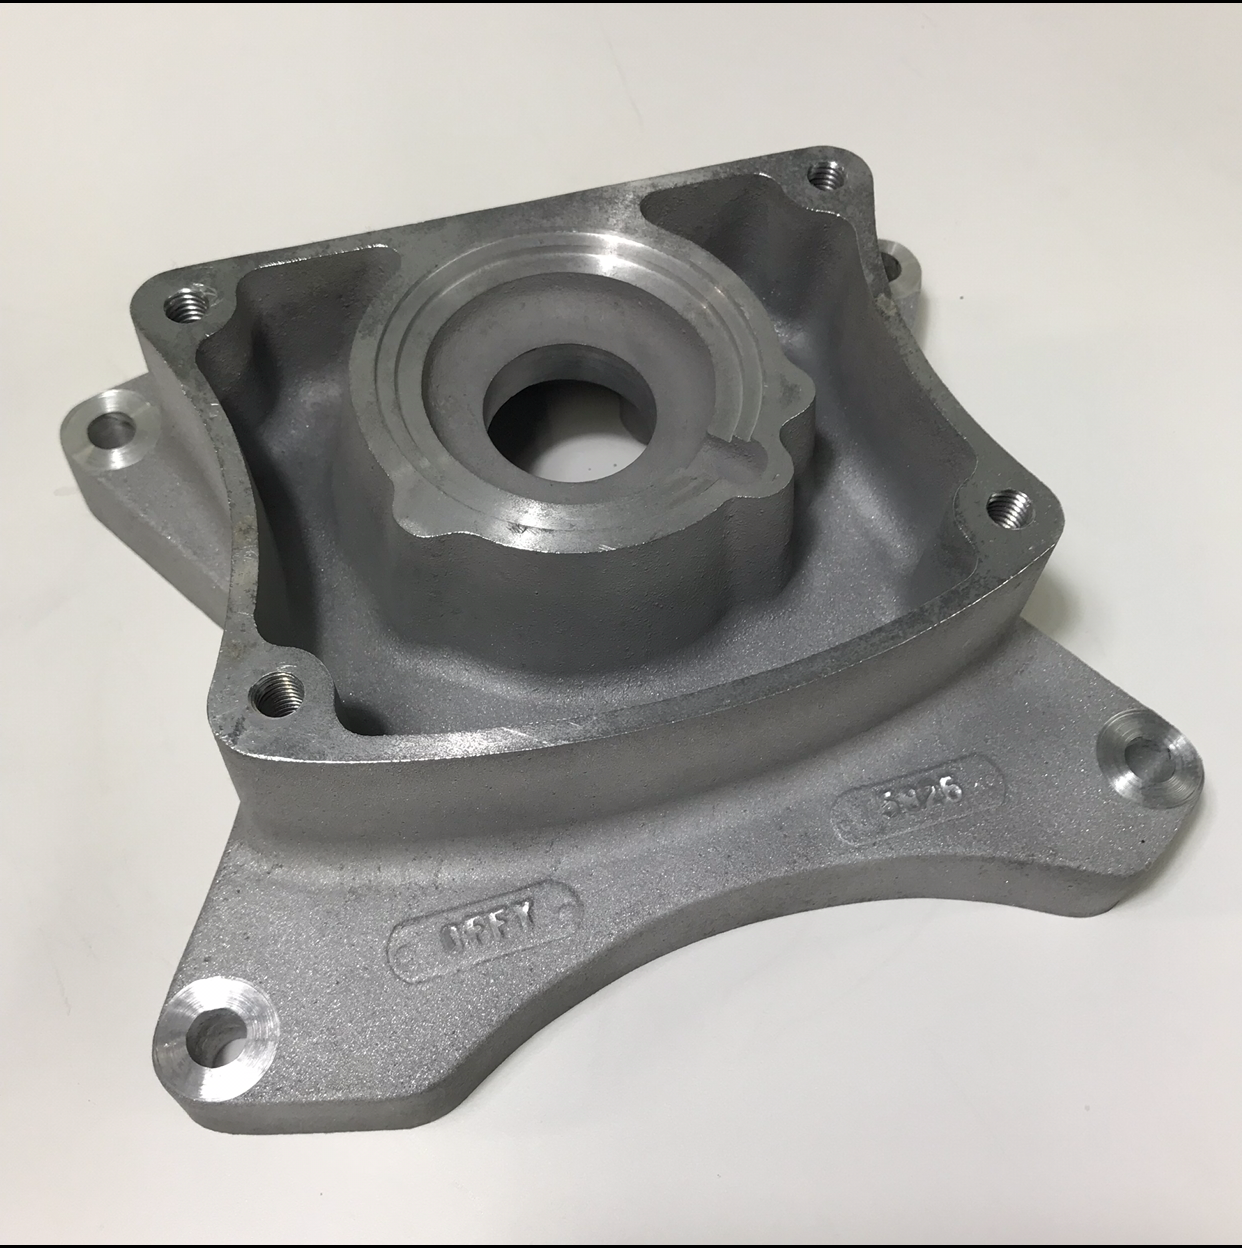 Offenhauser Ford 289-302 - 65-70 6 Bolt Bell Hsg. Transmission Bolt Flanges to Jeep & Toyota Transmissions